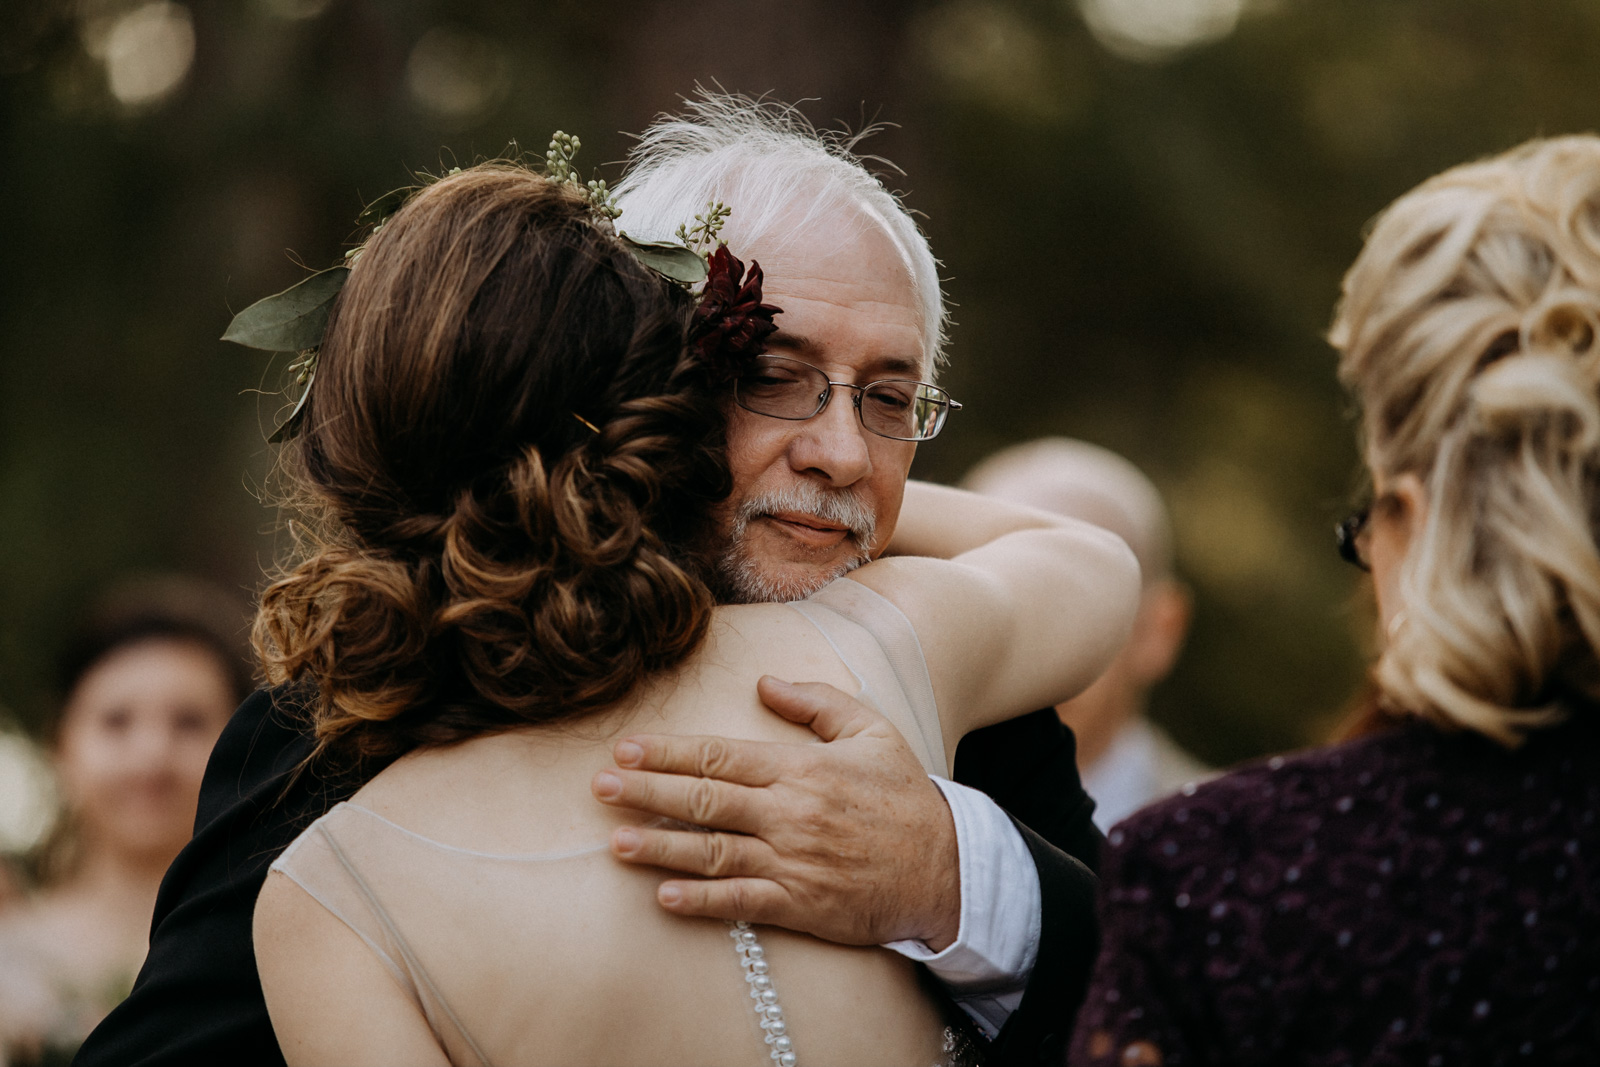 The bride hugging her father at the altar